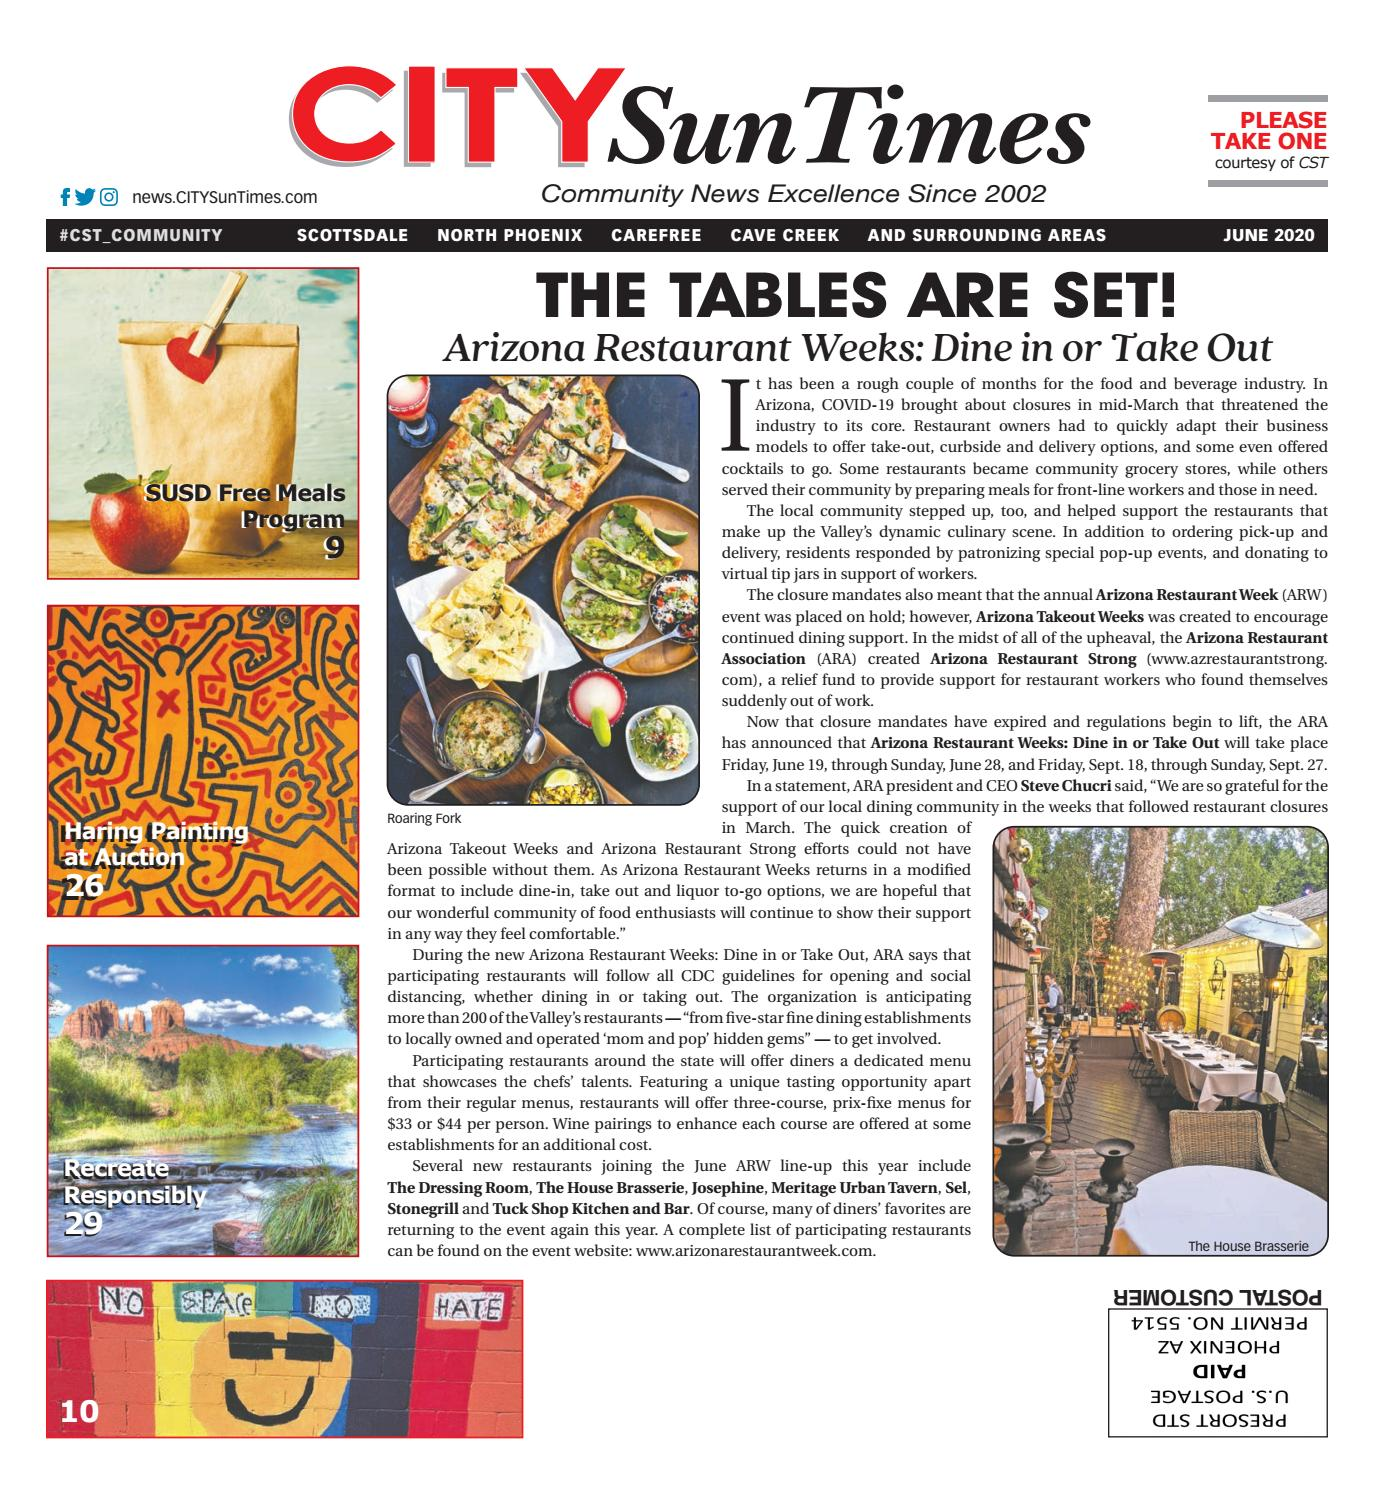 North Valley CITYSunTimes 2020 Issue by CITYSunTimes - issuu